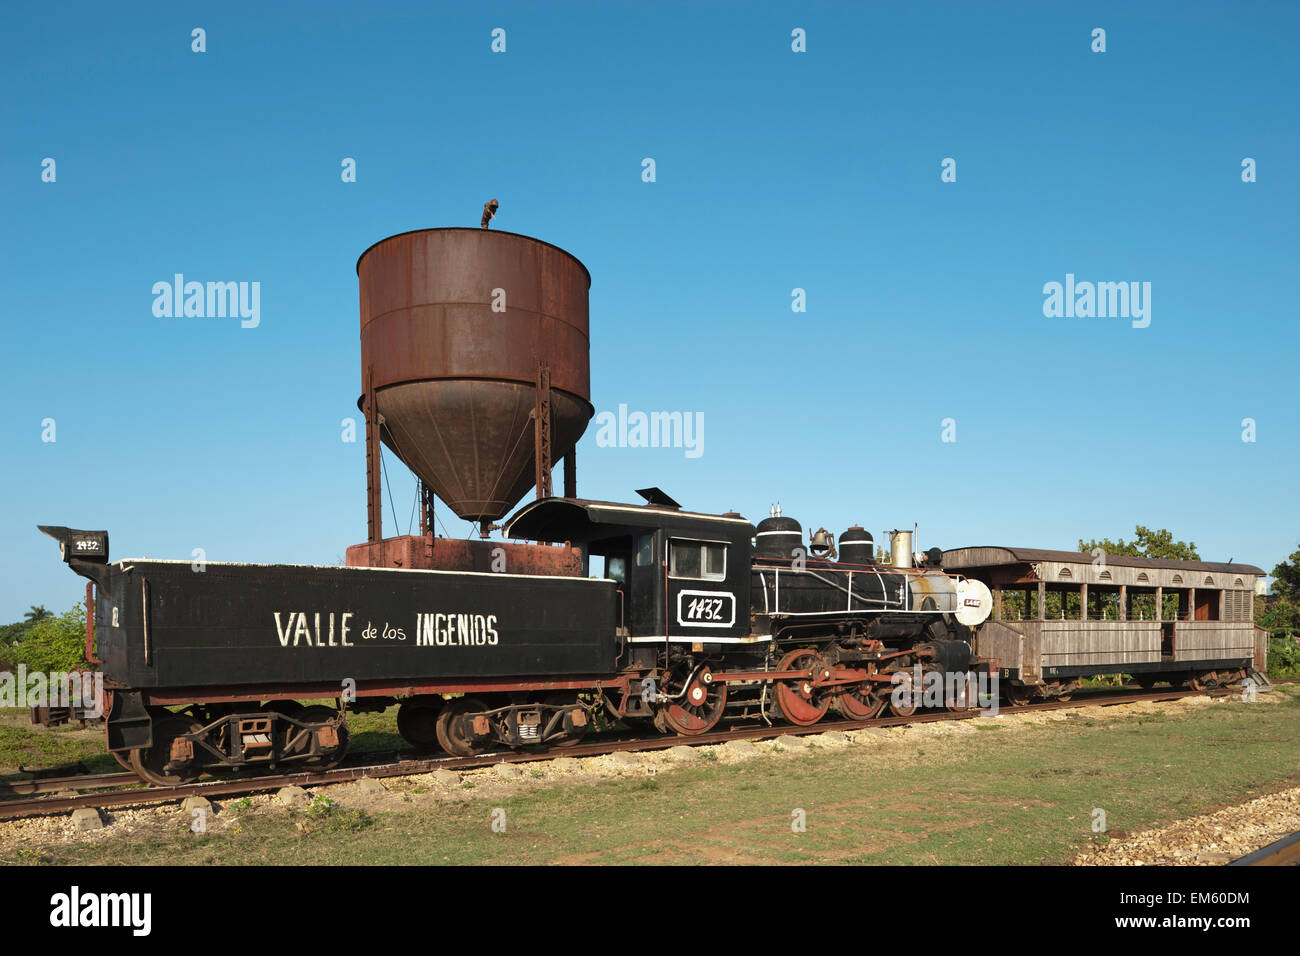 Traditional Working Steam Train Stock Photos & Traditional Working ...